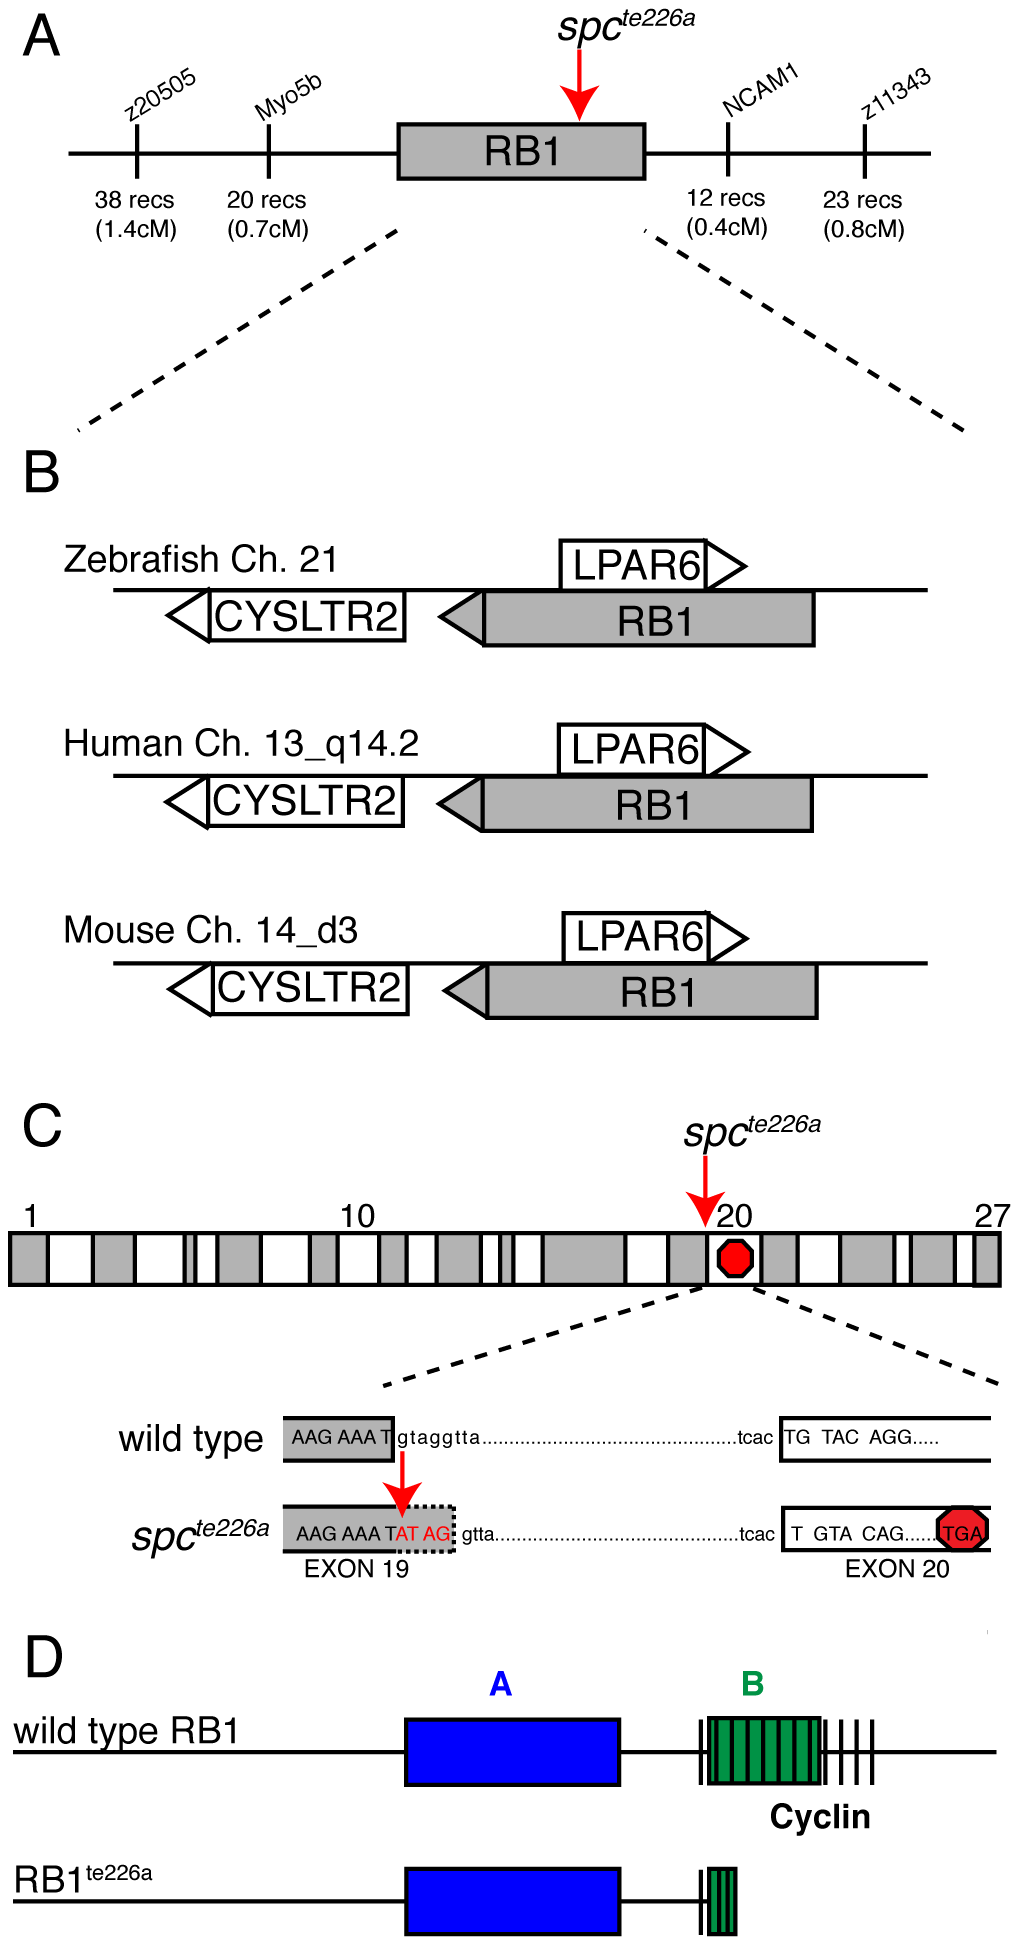 <i>spc<sup>te226a</sup></i> mutation induces a premature stop codon and truncation of Rb1.